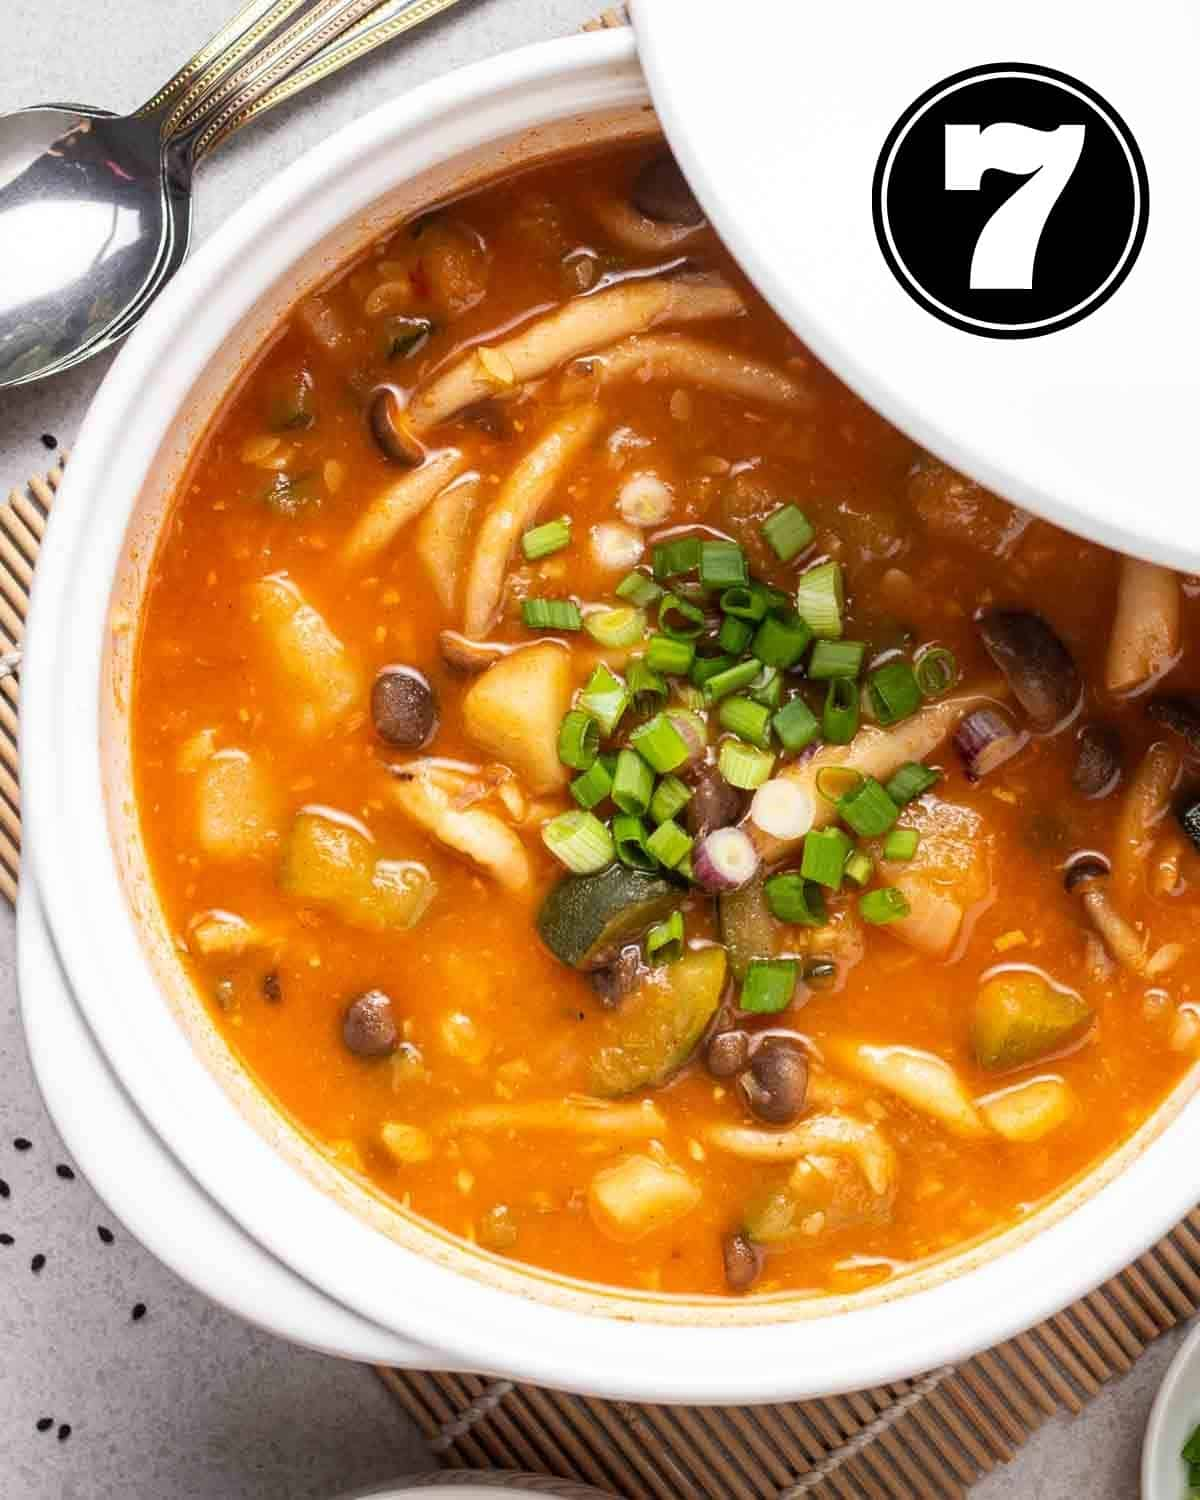 Gochujang soup in pot topped with chopped scallions.